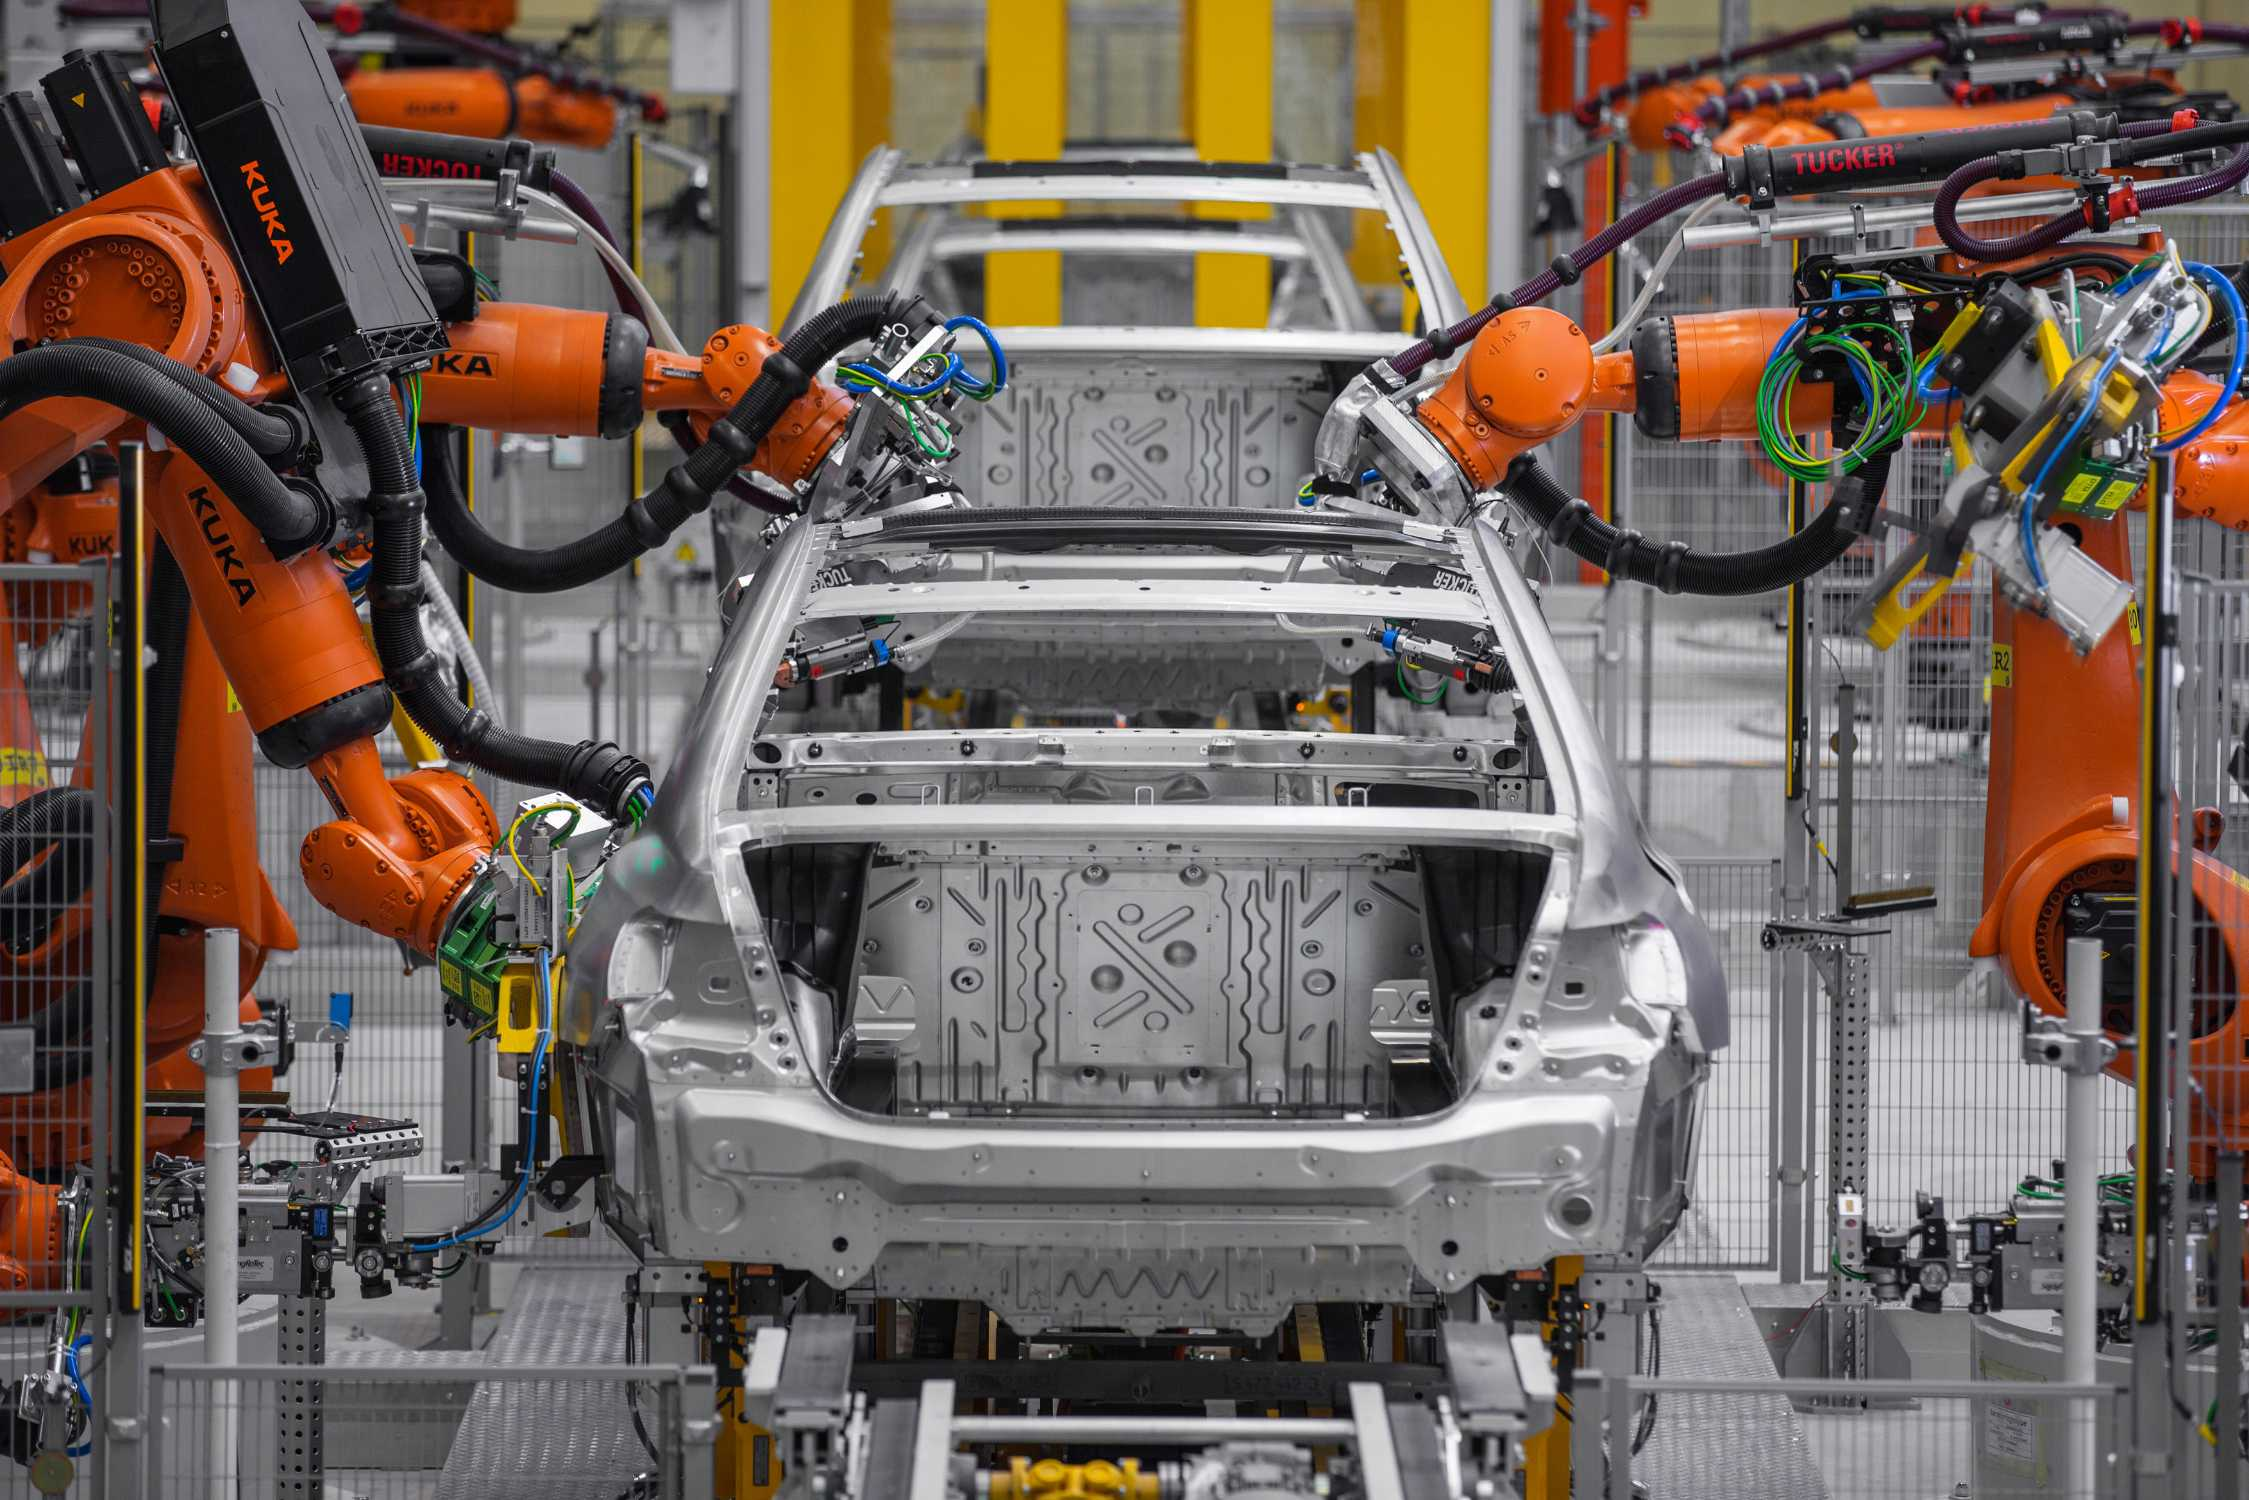 Bmw group plant dingolfing production of the bmw 7 series bodyshop lightweight construction intelligent material mix 06 2015